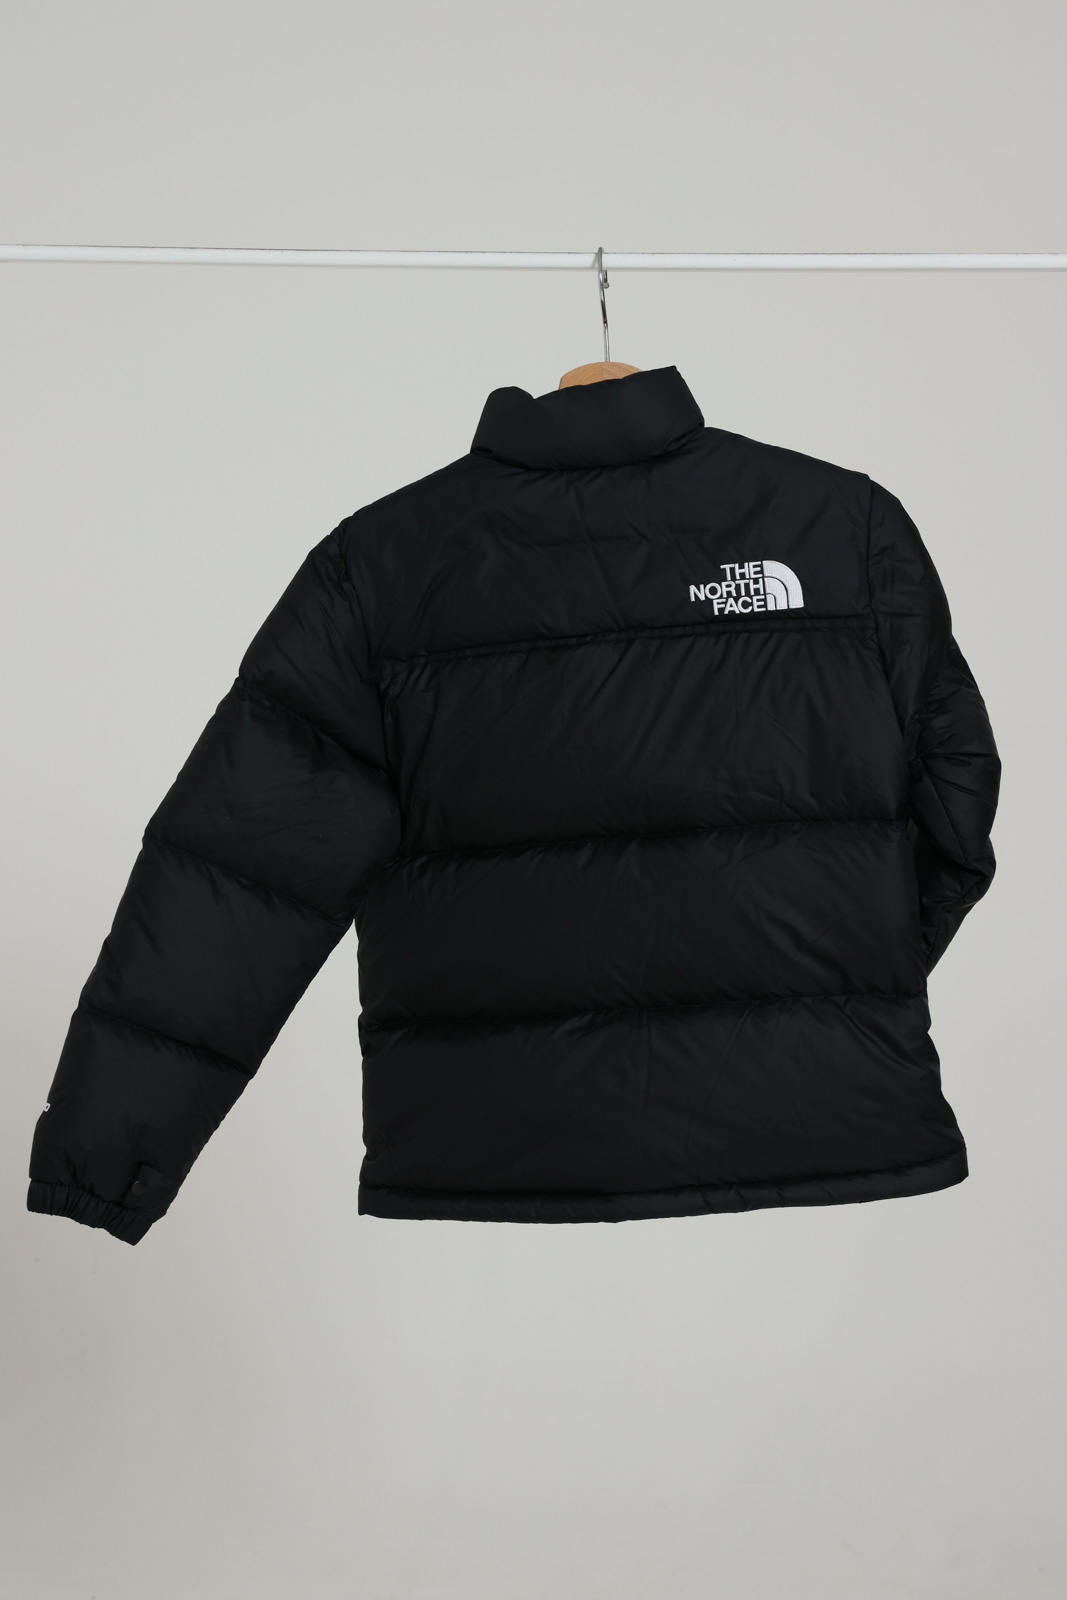 THE NORTH FACE | Jacket | NF0A4TIMJK31JK31